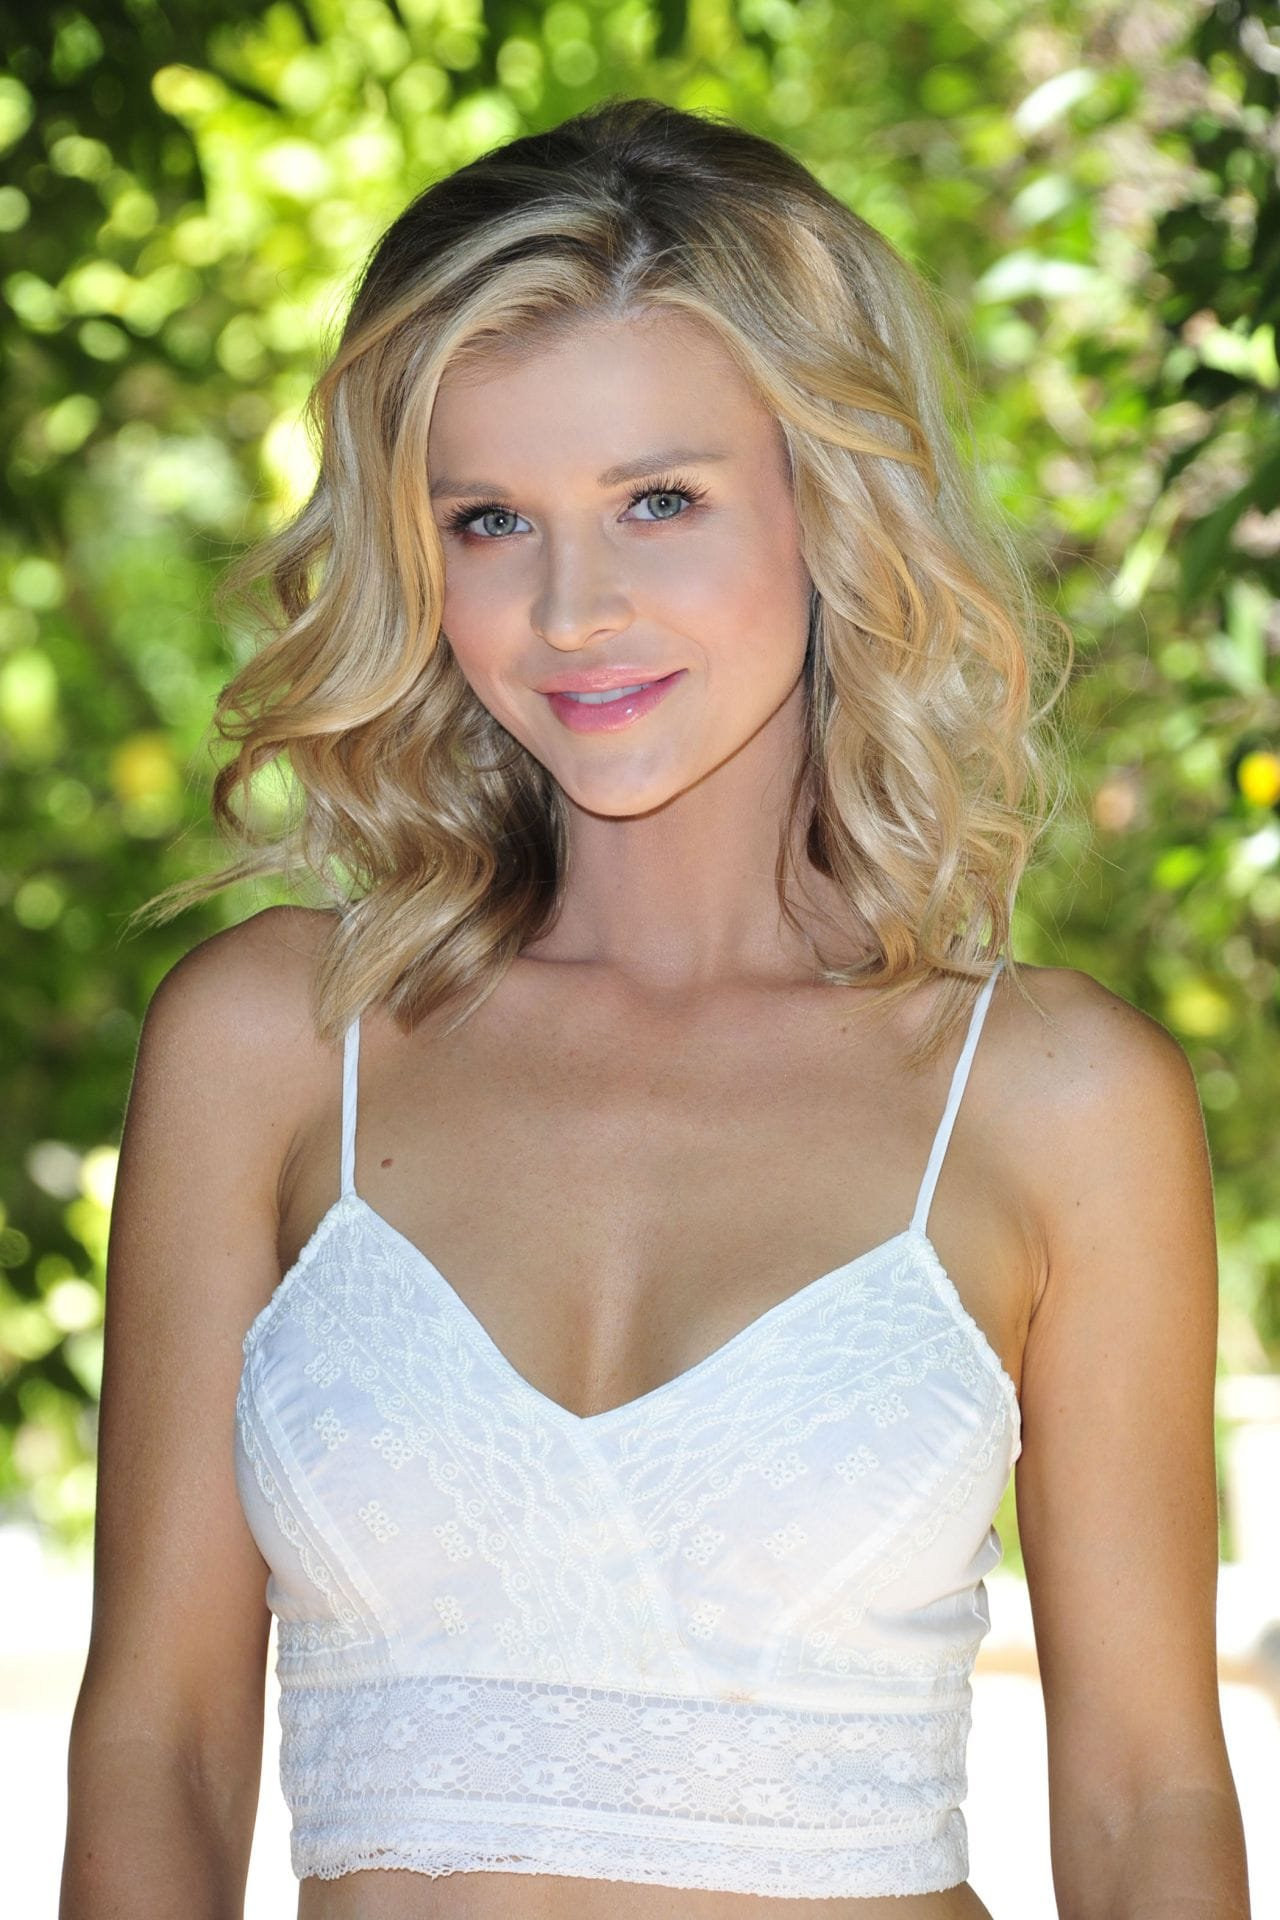 Joanna Krupa Desktop wallpaper